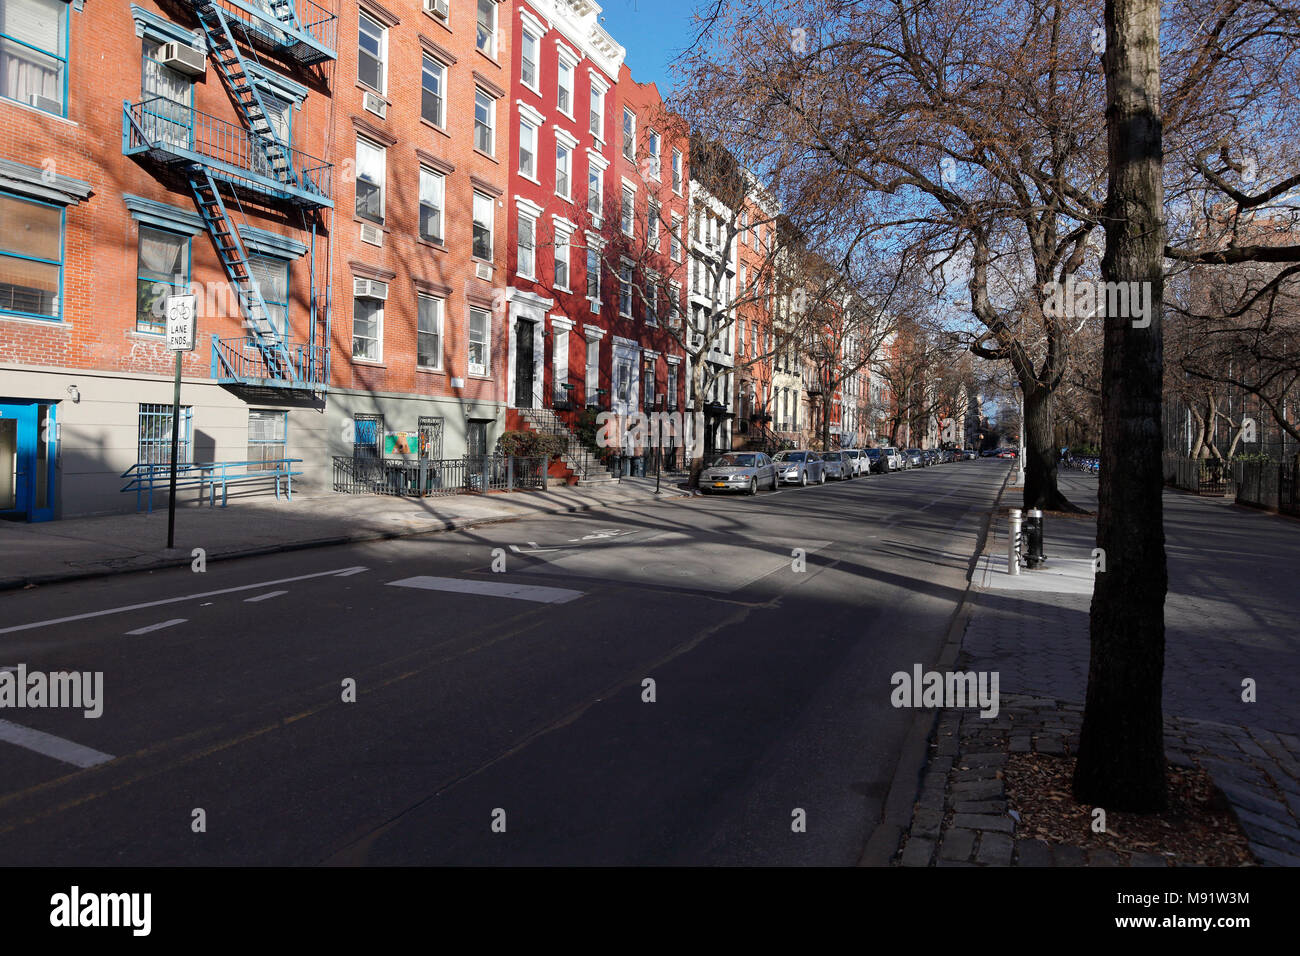 Houses in the East Village, New York City - Stock Image